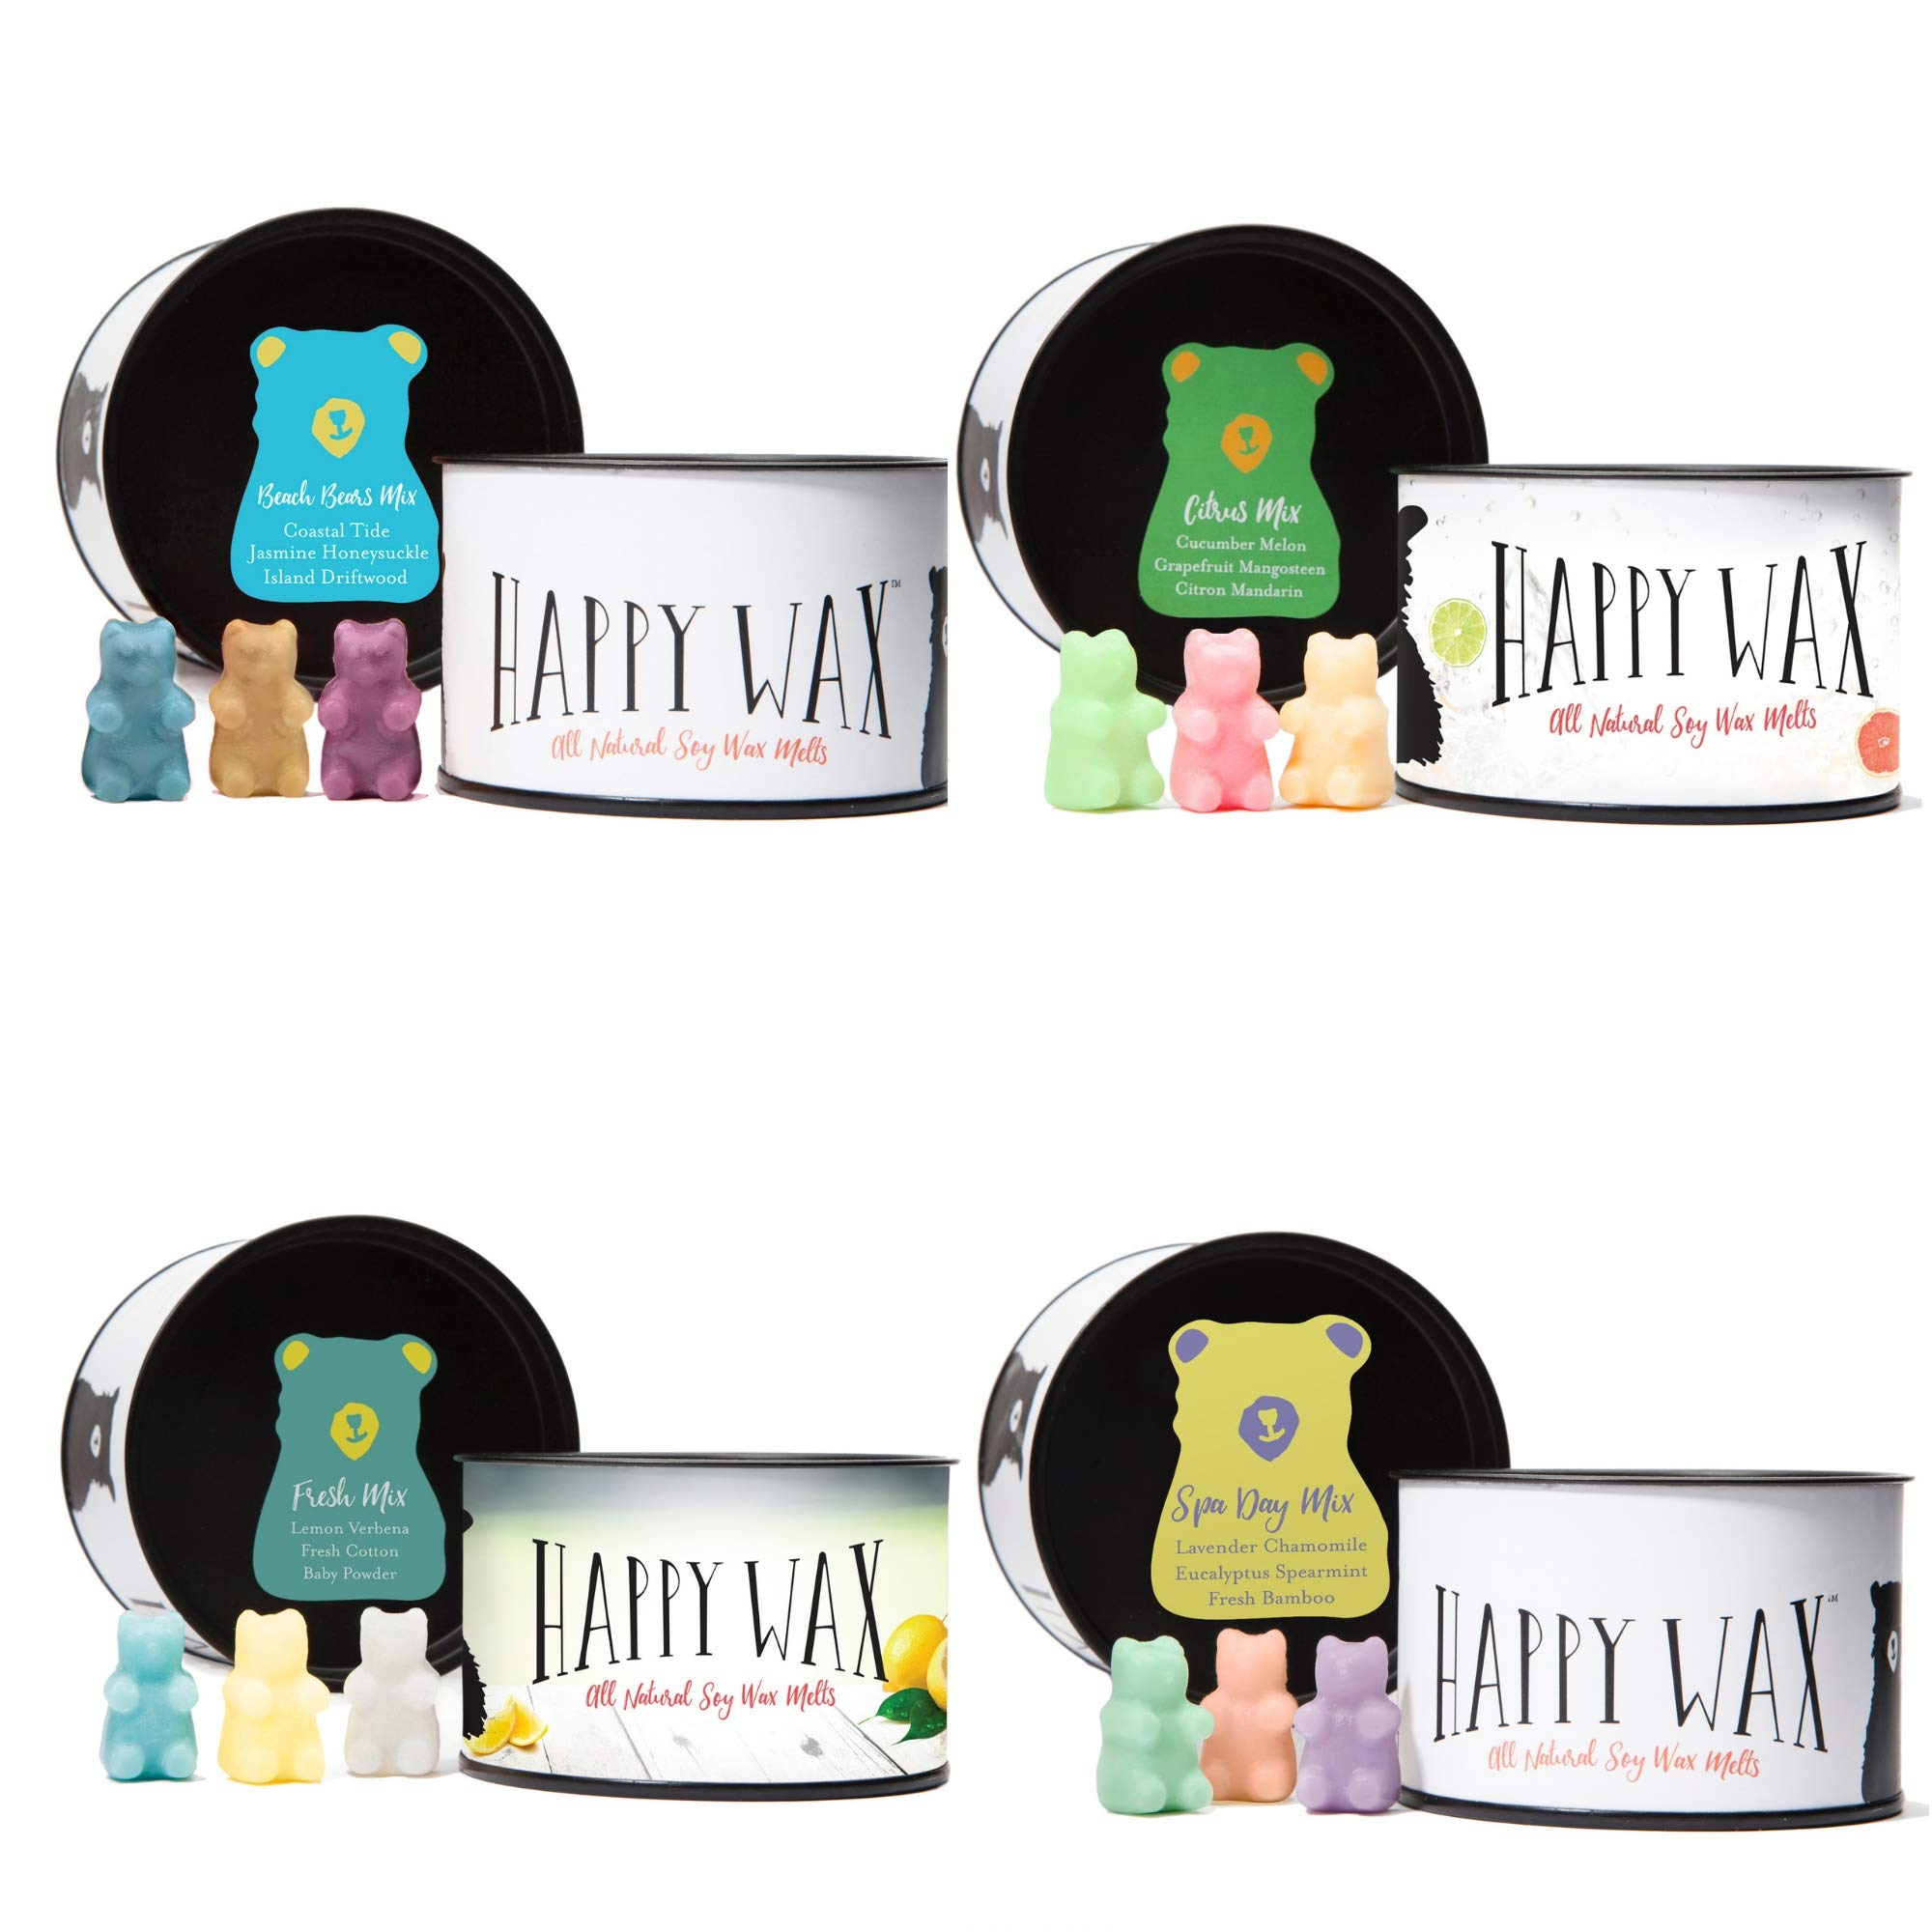 Happy Wax - Four Mixed Tins Wax Melt Sampler Gift Set - Includes 3.6 Oz Each of Our Scented Soy Wax Melts in Our Spa Day Mix, Beach Bears Mix, Citrus Mix, and Fresh Mix! by Happy Wax (Image #2)